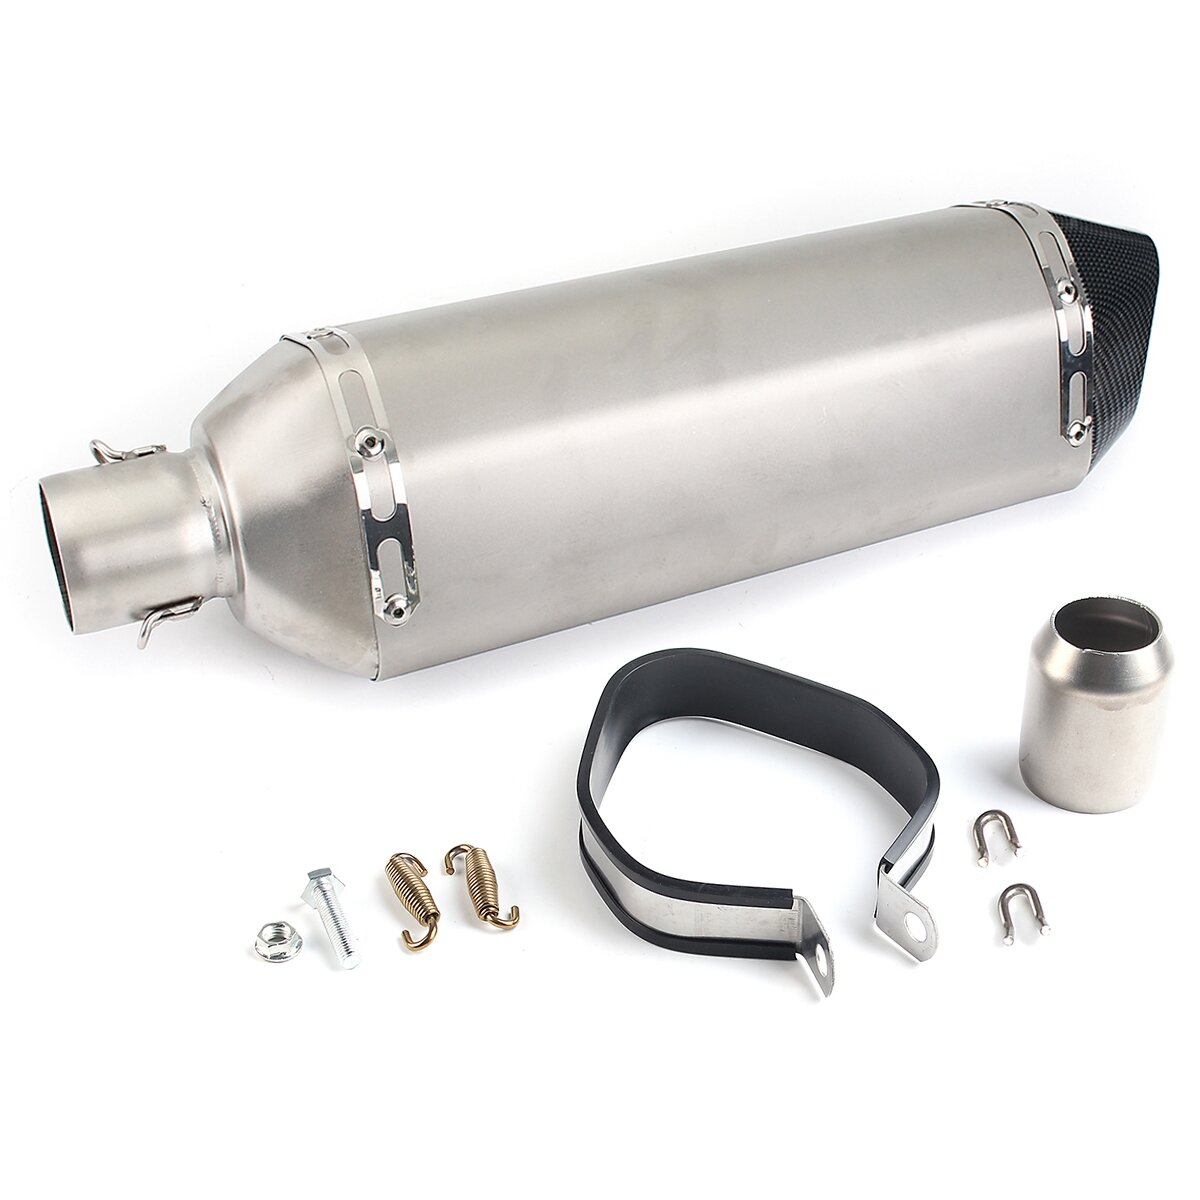 38mm-51mm Stainless Steel Exhaust Muffler Pipe Kit For Motorcycle ATV Universal